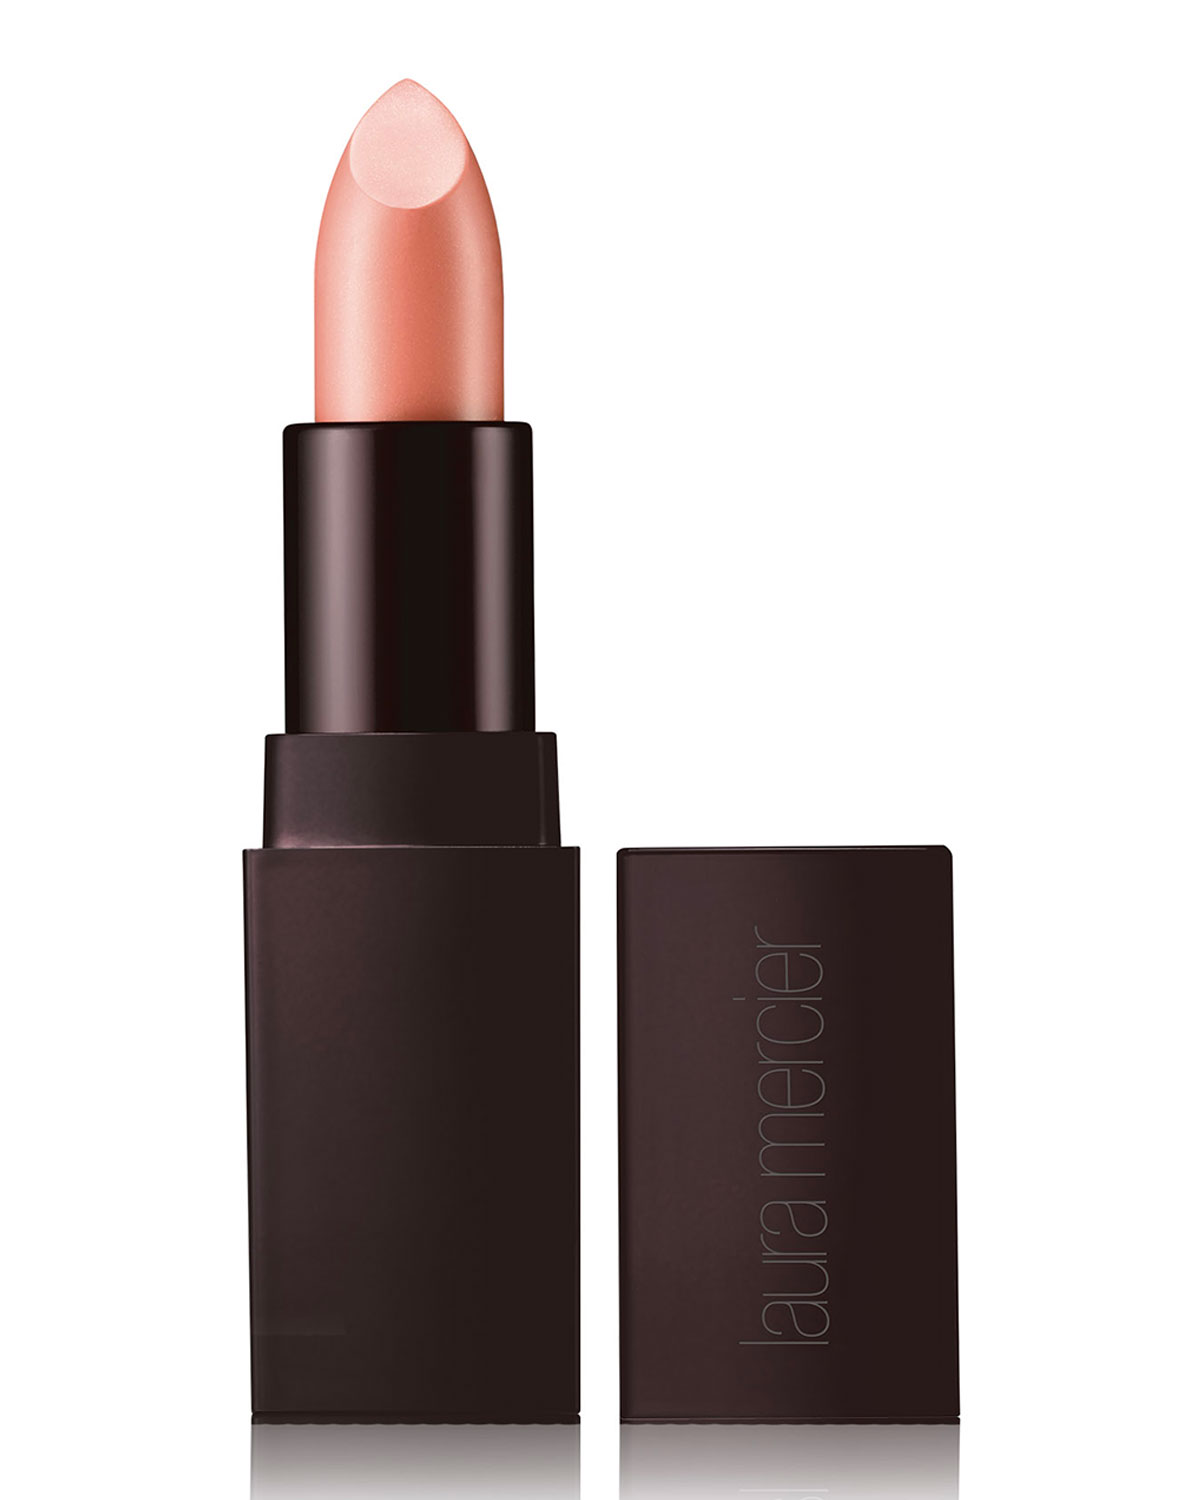 Creme Smooth Lip Colour, Milky Way - Laura Mercier